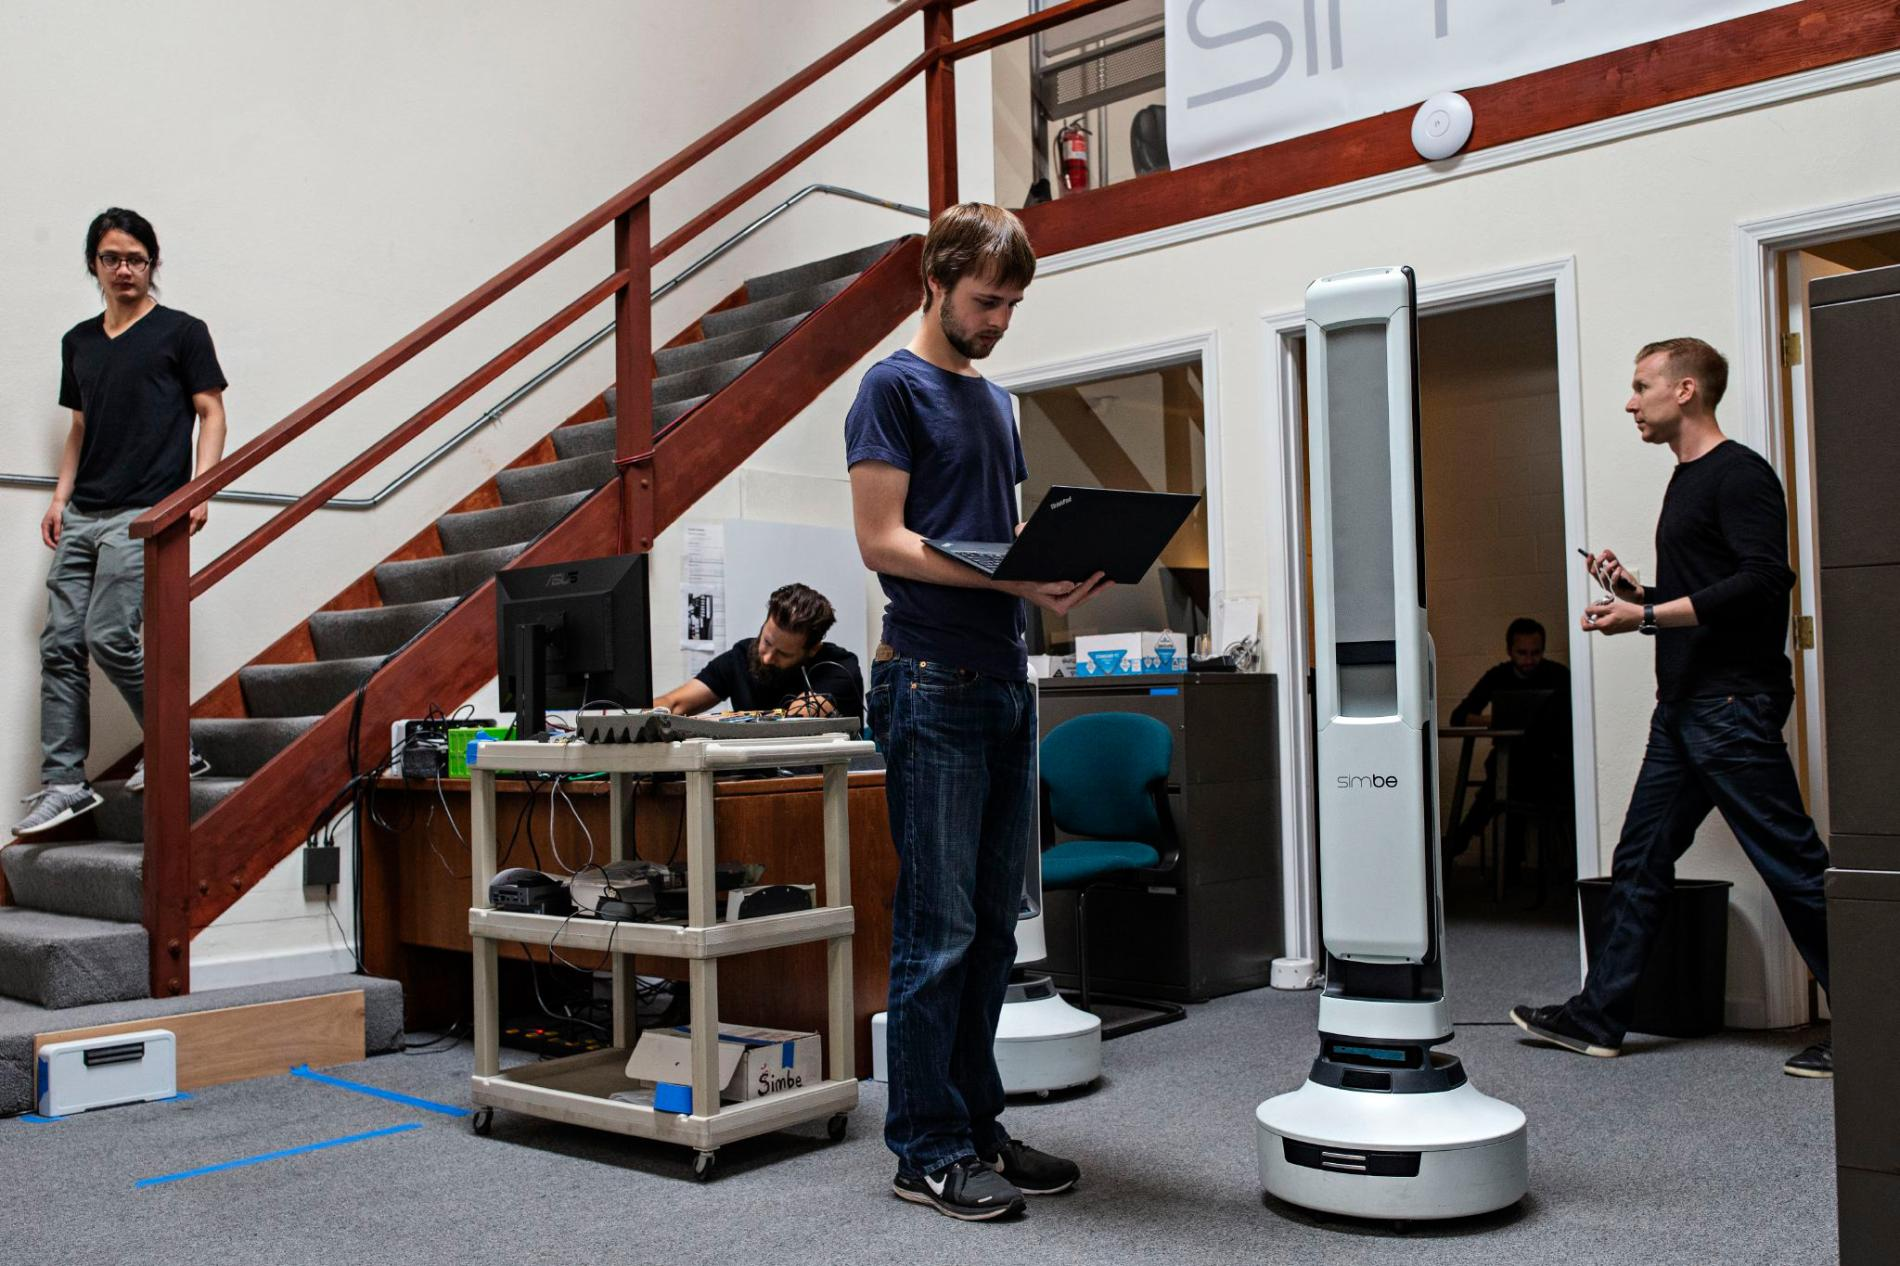 Senior robotics engineer Steven Macenski works on robot perception with the Tally robot, which is designed to scan shelves to identify objects that are misplaced, priced incorrectly, low in stock, or out of stock. PHOTOGRAPH BY LAURA MORTON